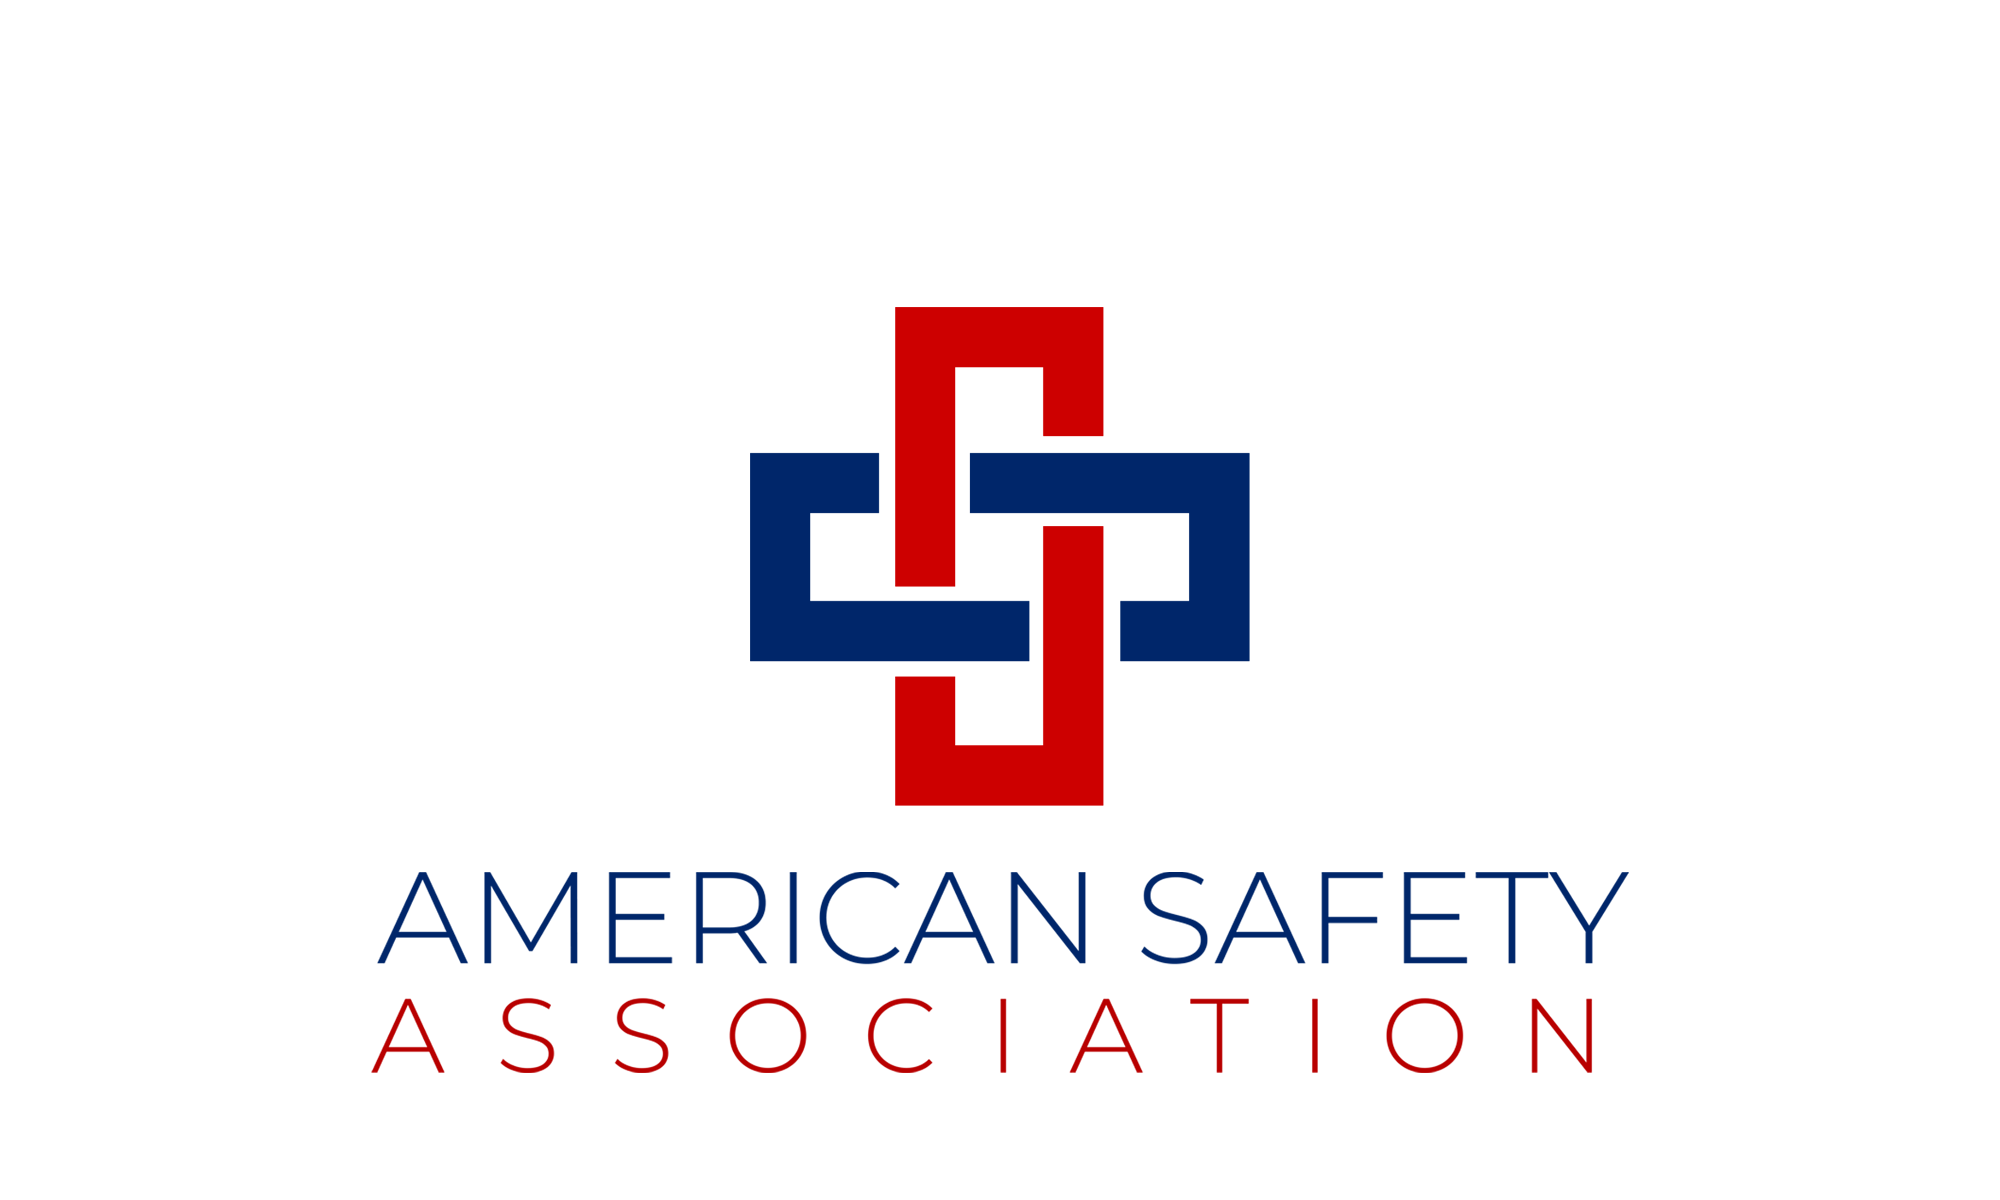 American Safety Association